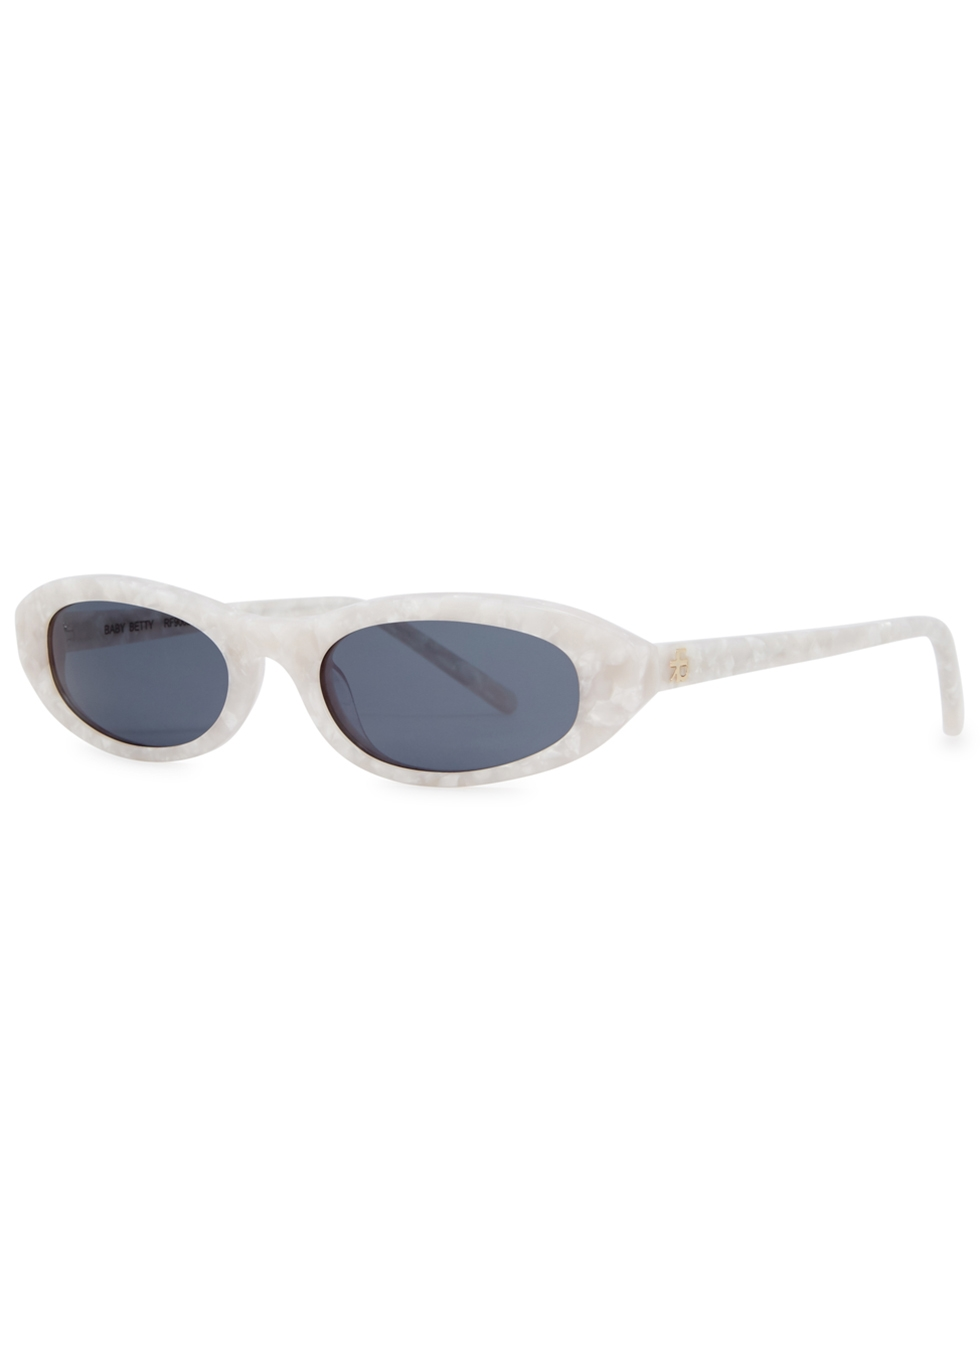 ROBERI AND FRAUD Baby Betty Oval-Frame Sunglasses in White